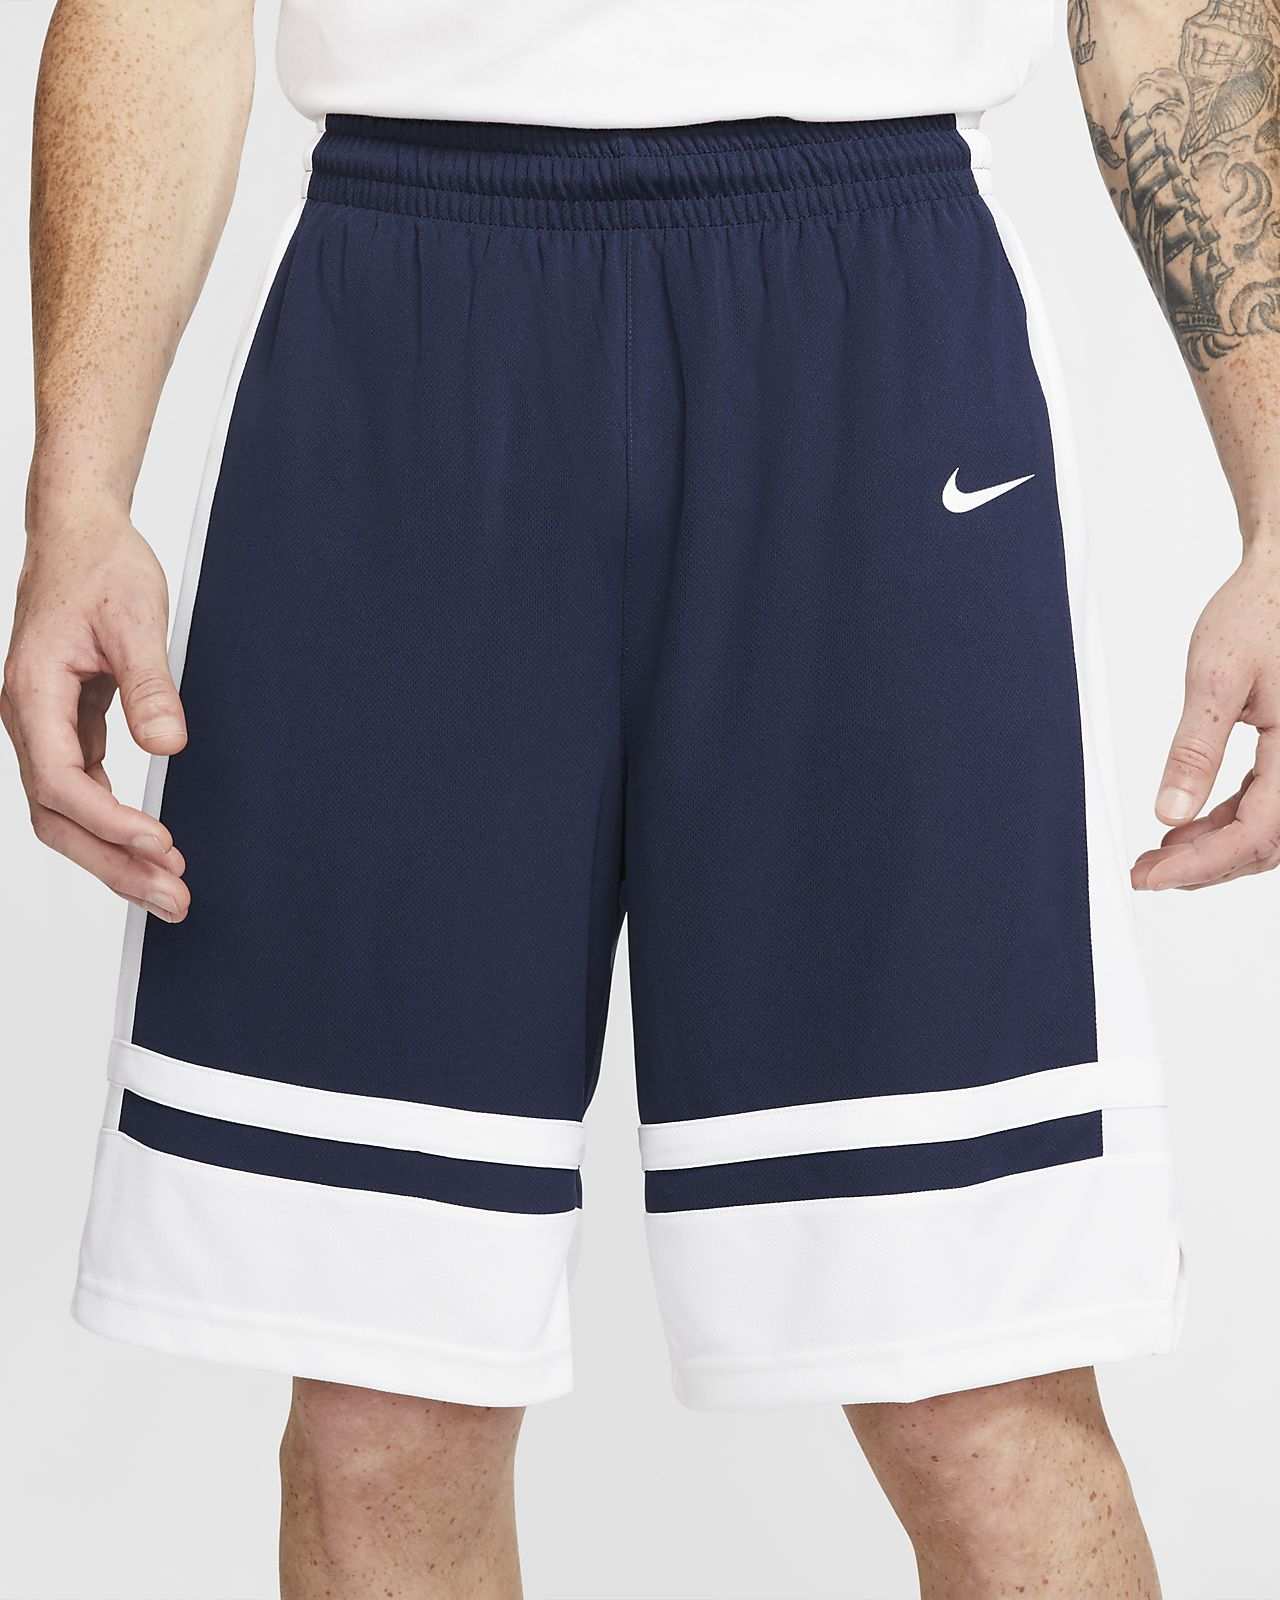 Nike Elite Men's Basketball Shorts (Stock)